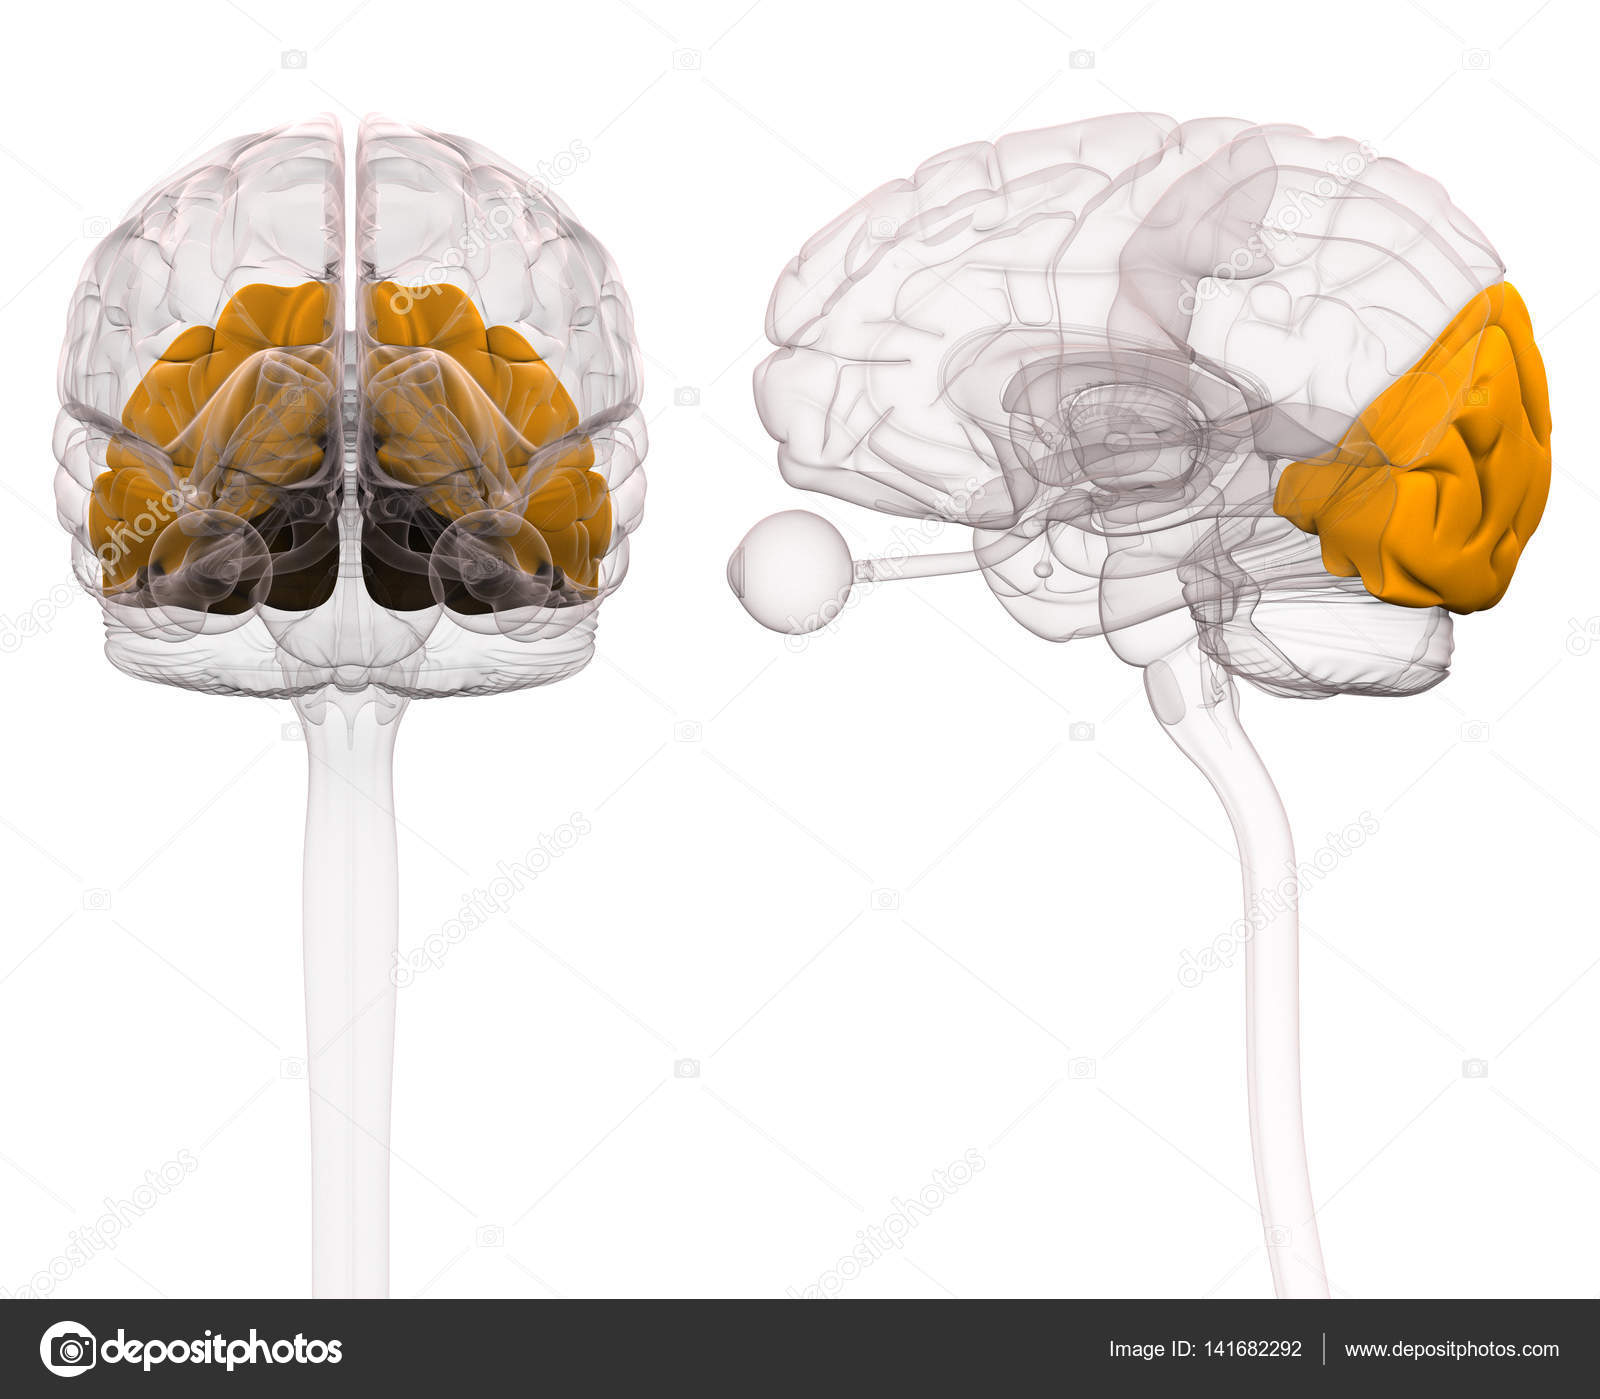 Okzipitale Anatomie des Gehirns - 3D-Illustration — Stockfoto ...